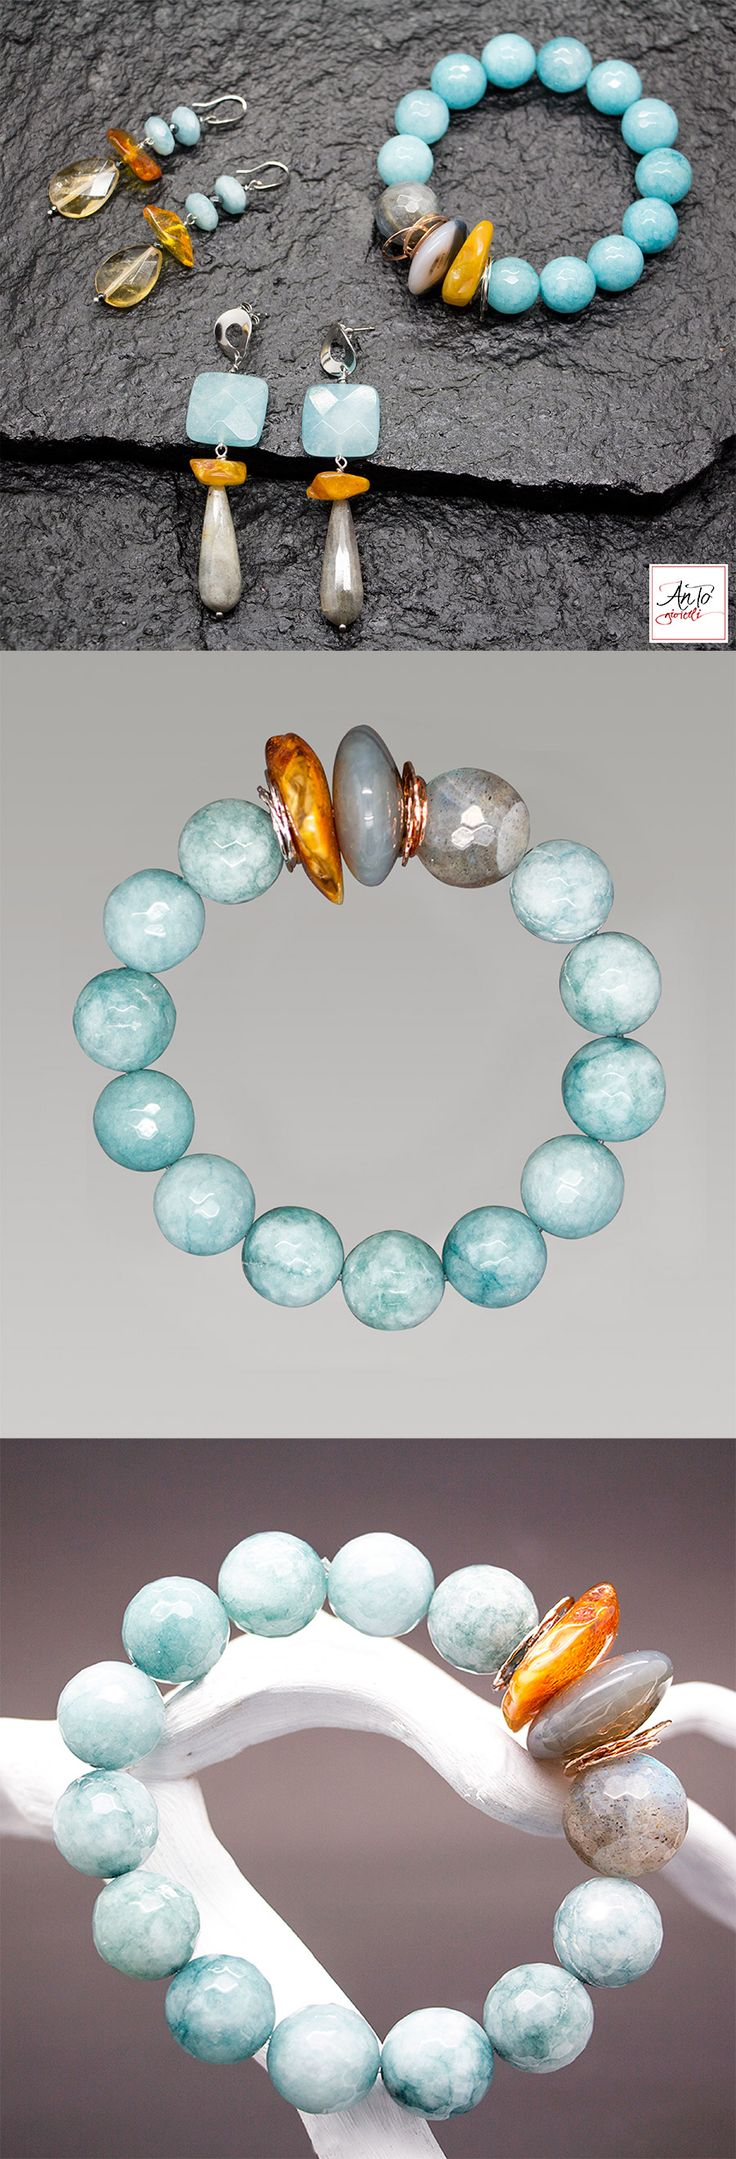 Bracelet: 49€ - Shipping free!!! Handmade in Italy. Beautiful light blue bracelet, with blue Jade stone and yellow Amber. Details Silver 925, without Nichel. Buy it on our website: http://www.antogioielli.it/50-azzurro-blu